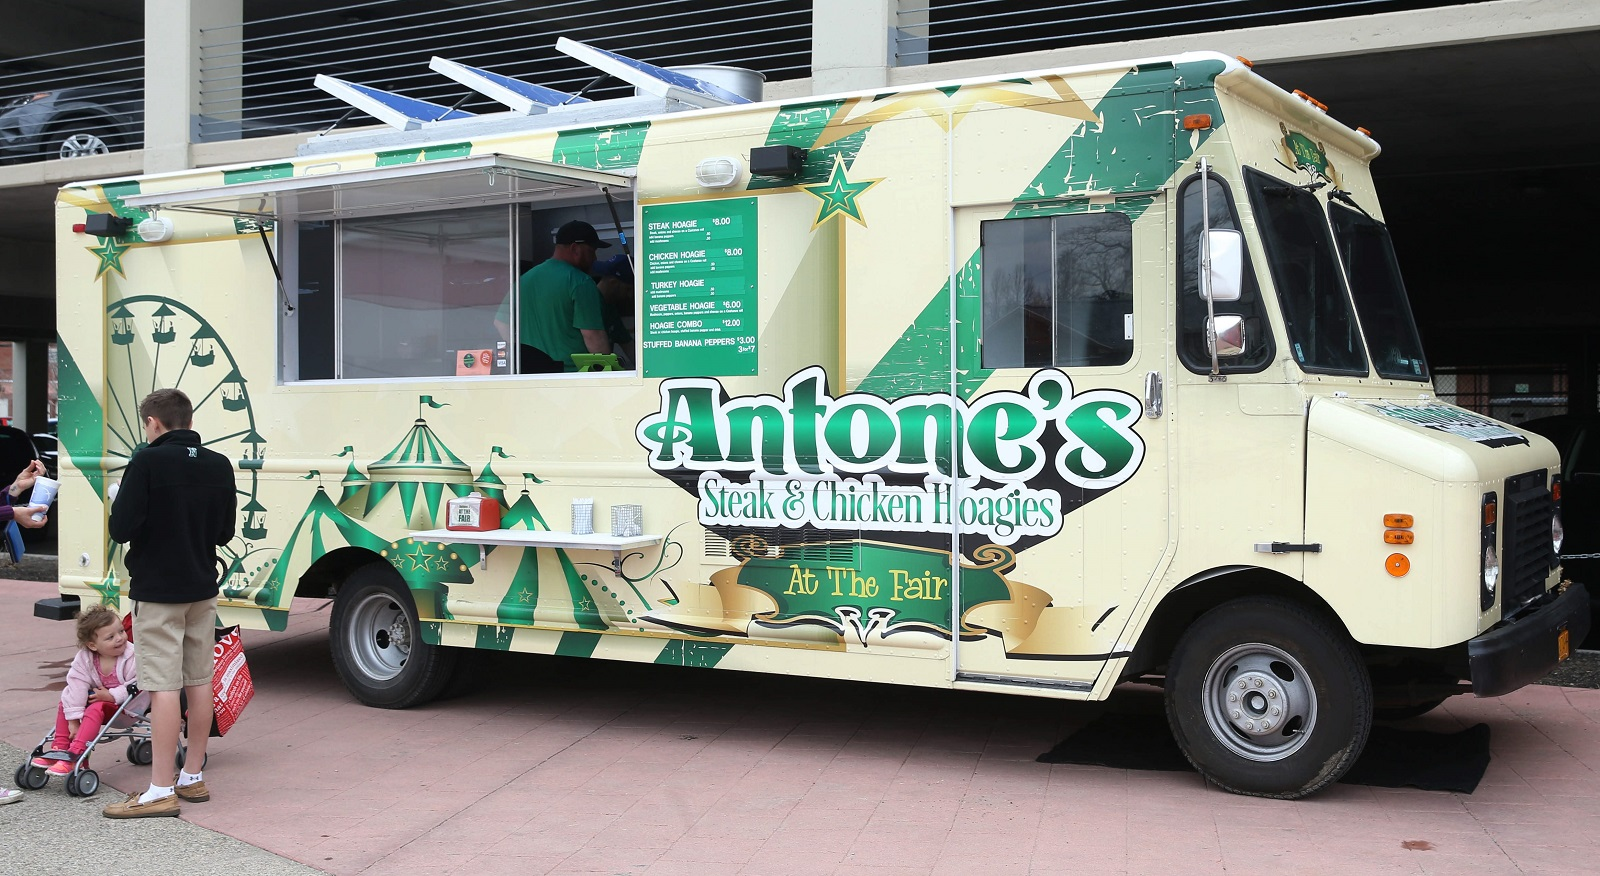 Antone's food truck served at the Erie County Fair last year and now has a regular mobile presence. (Sharon Cantillon/Buffalo News)